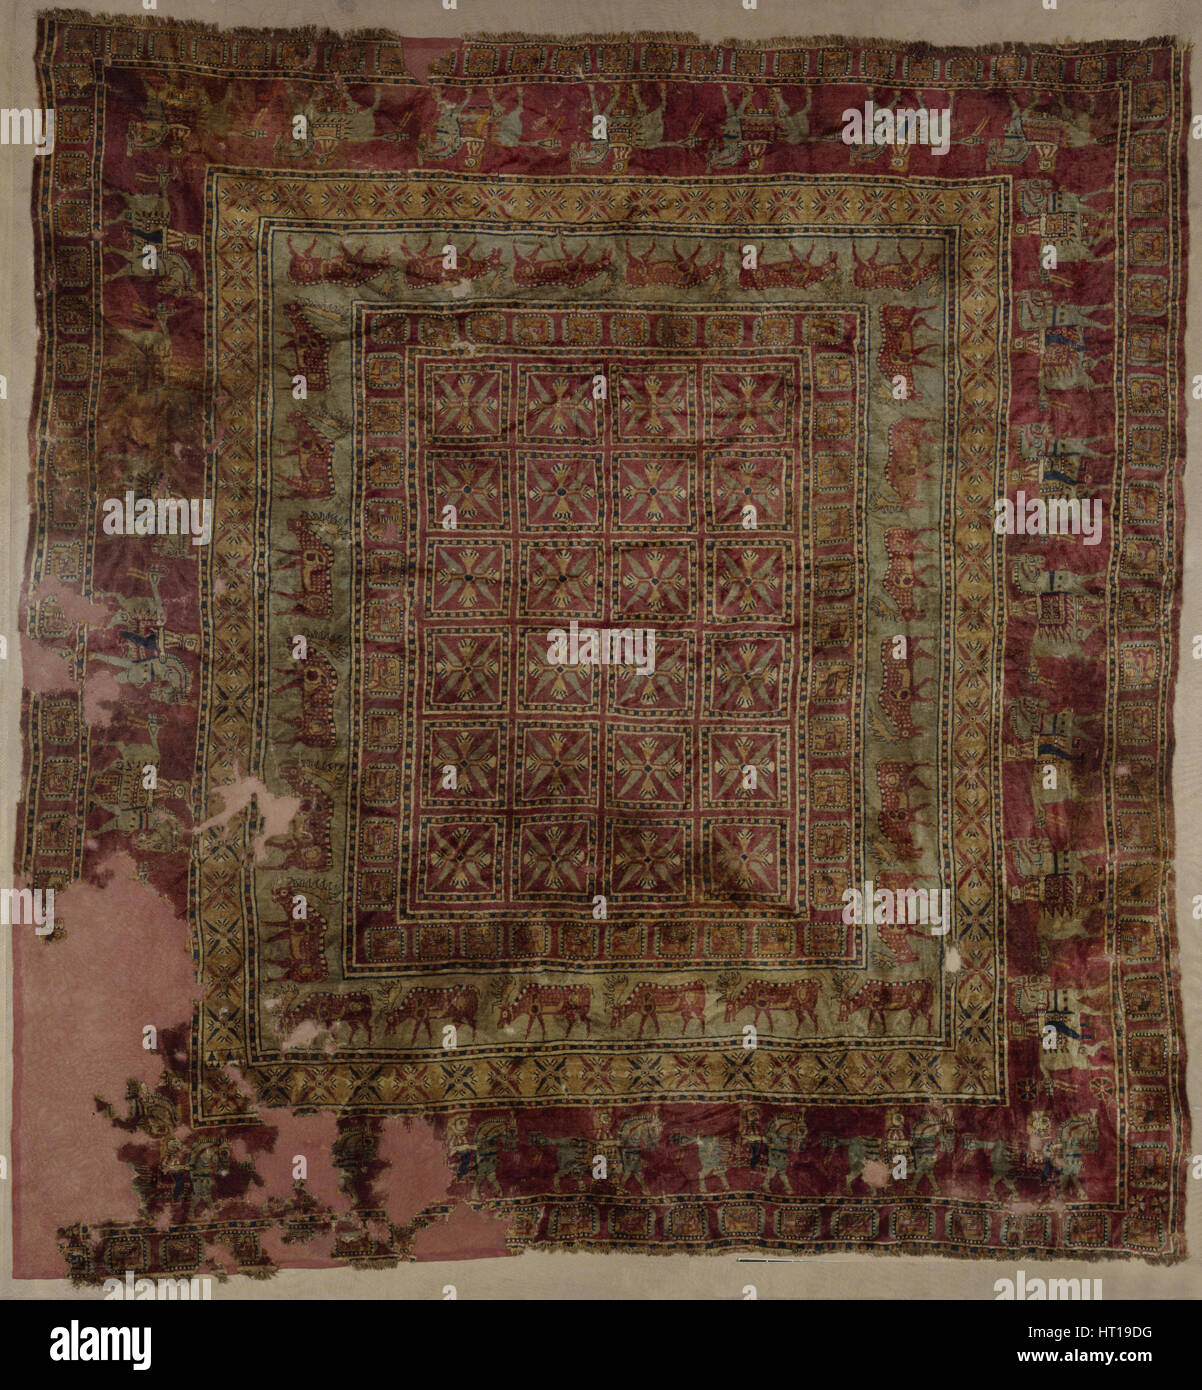 Pile Carpet, 5th-4th century BC. Artist: Ancient Altaian, Pazyryk Burial Mounds - Stock Image